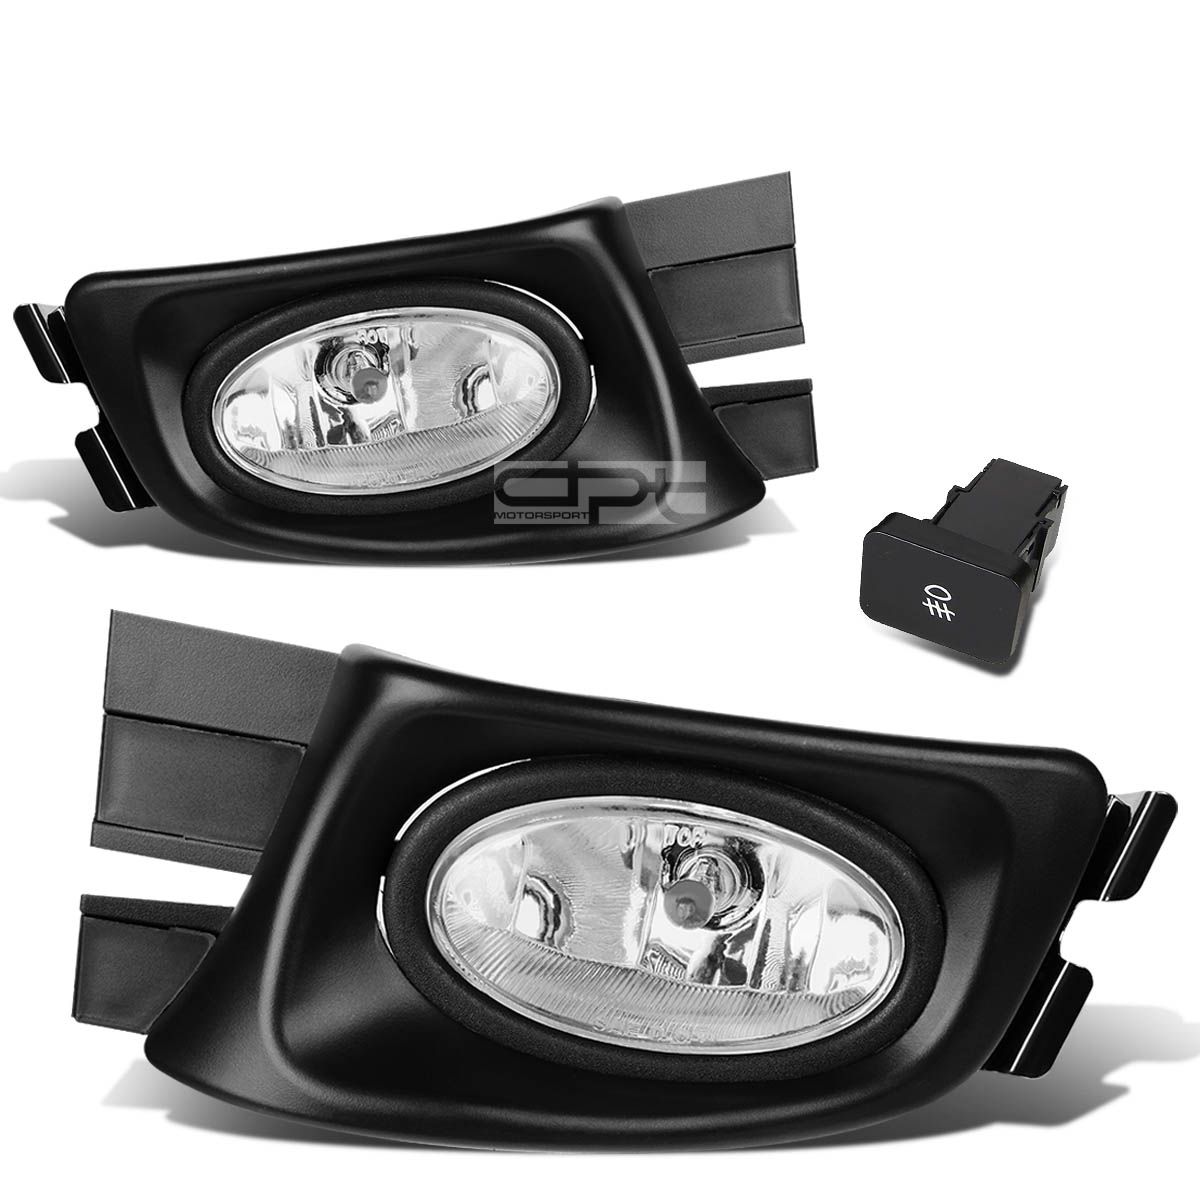 Fit Honda Accord 03-05 4-Dr Sedan Oe Bumper Fog Light Lamp Kit With Switch+Wire